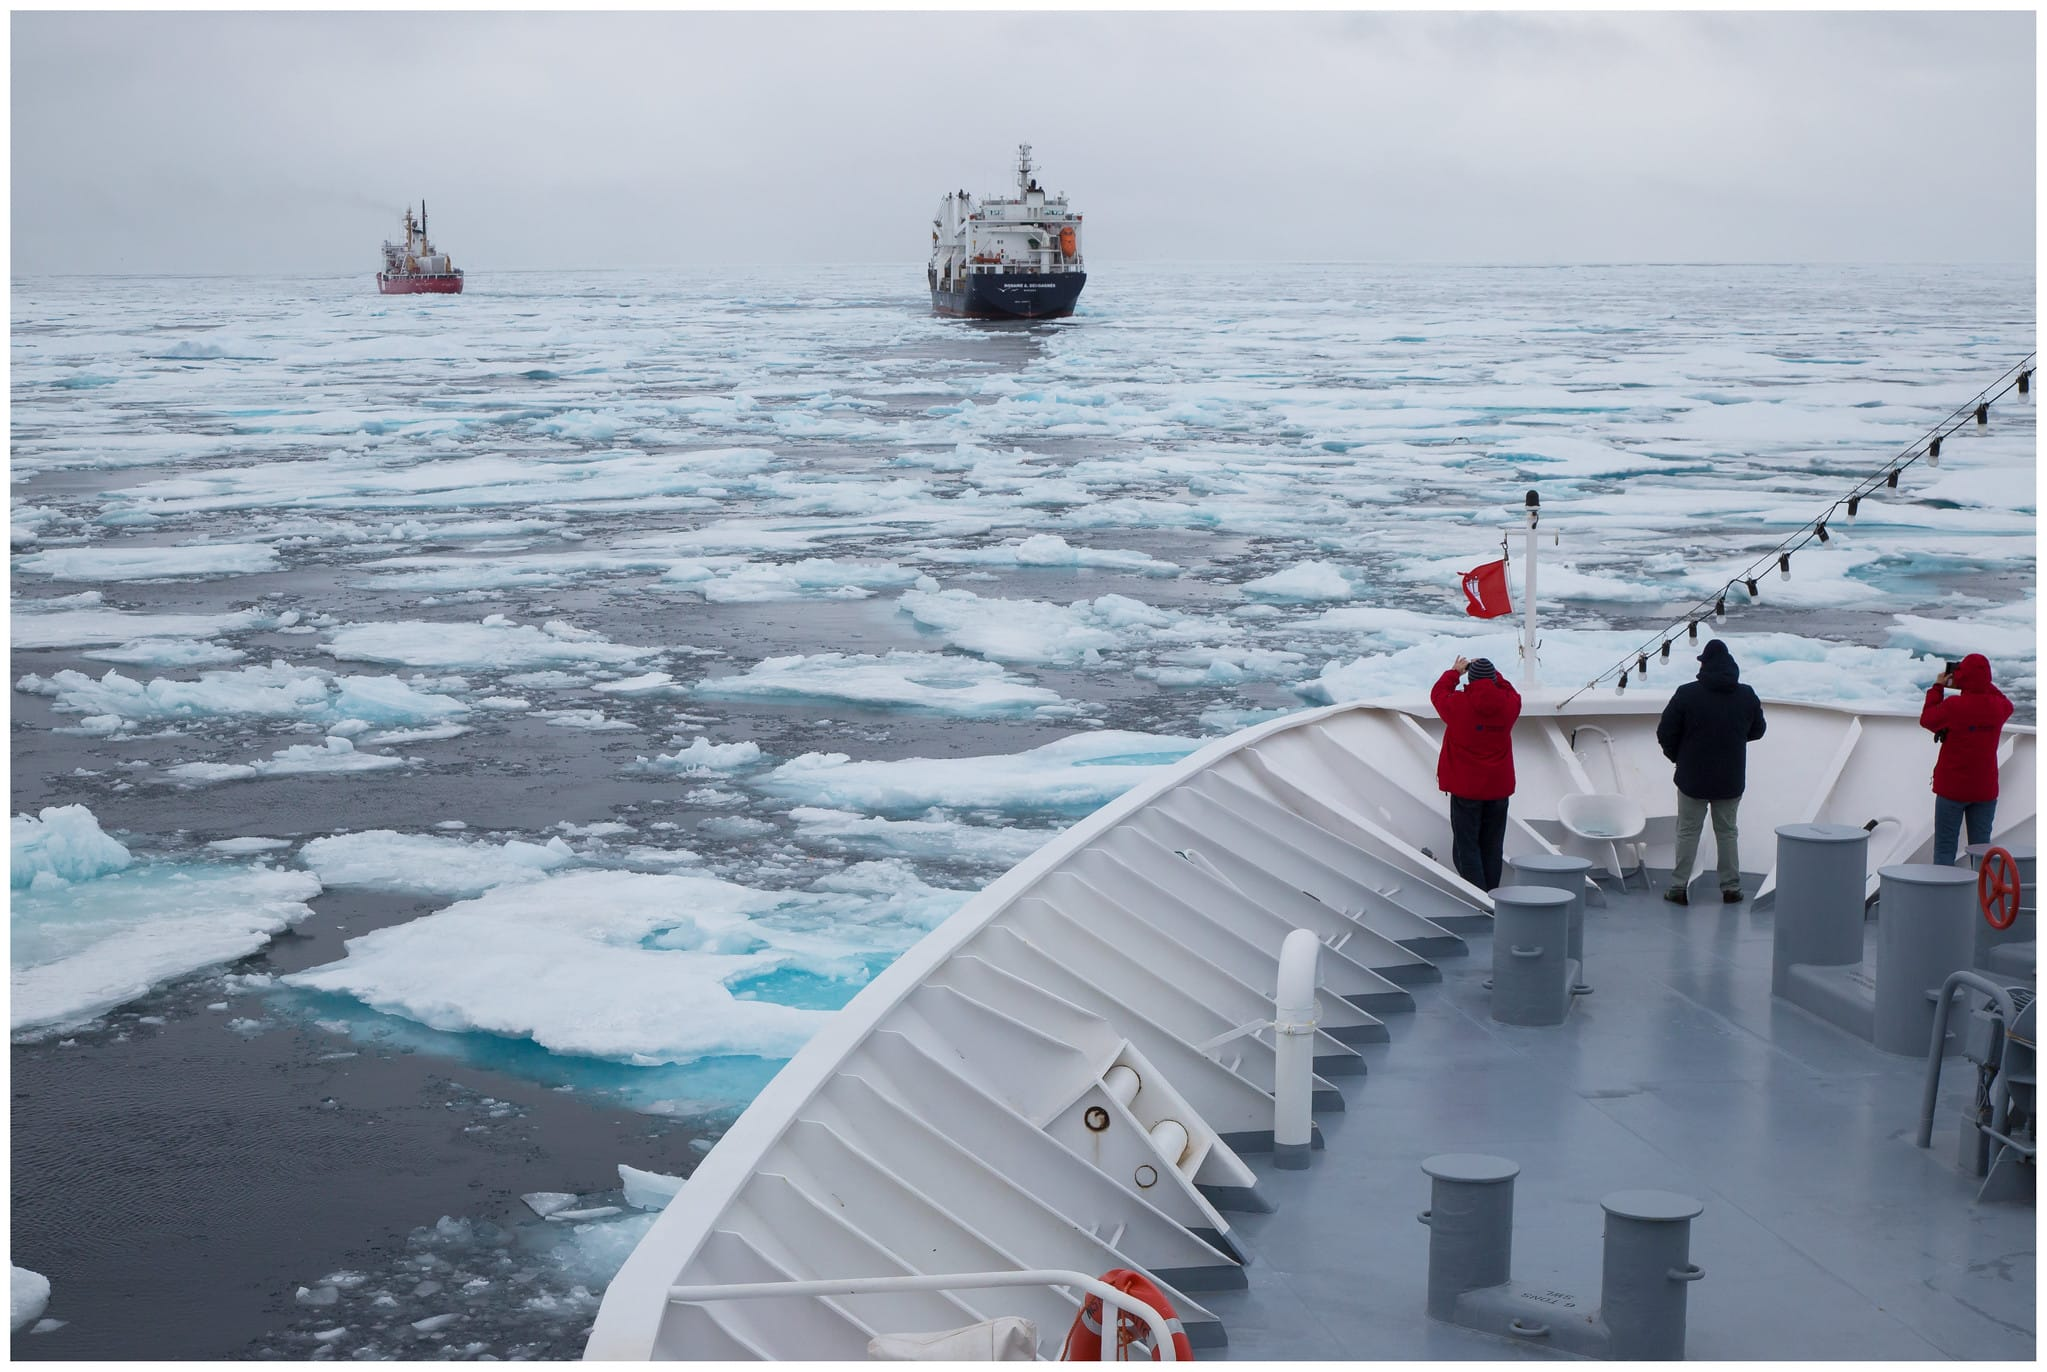 Arctic boat traffic